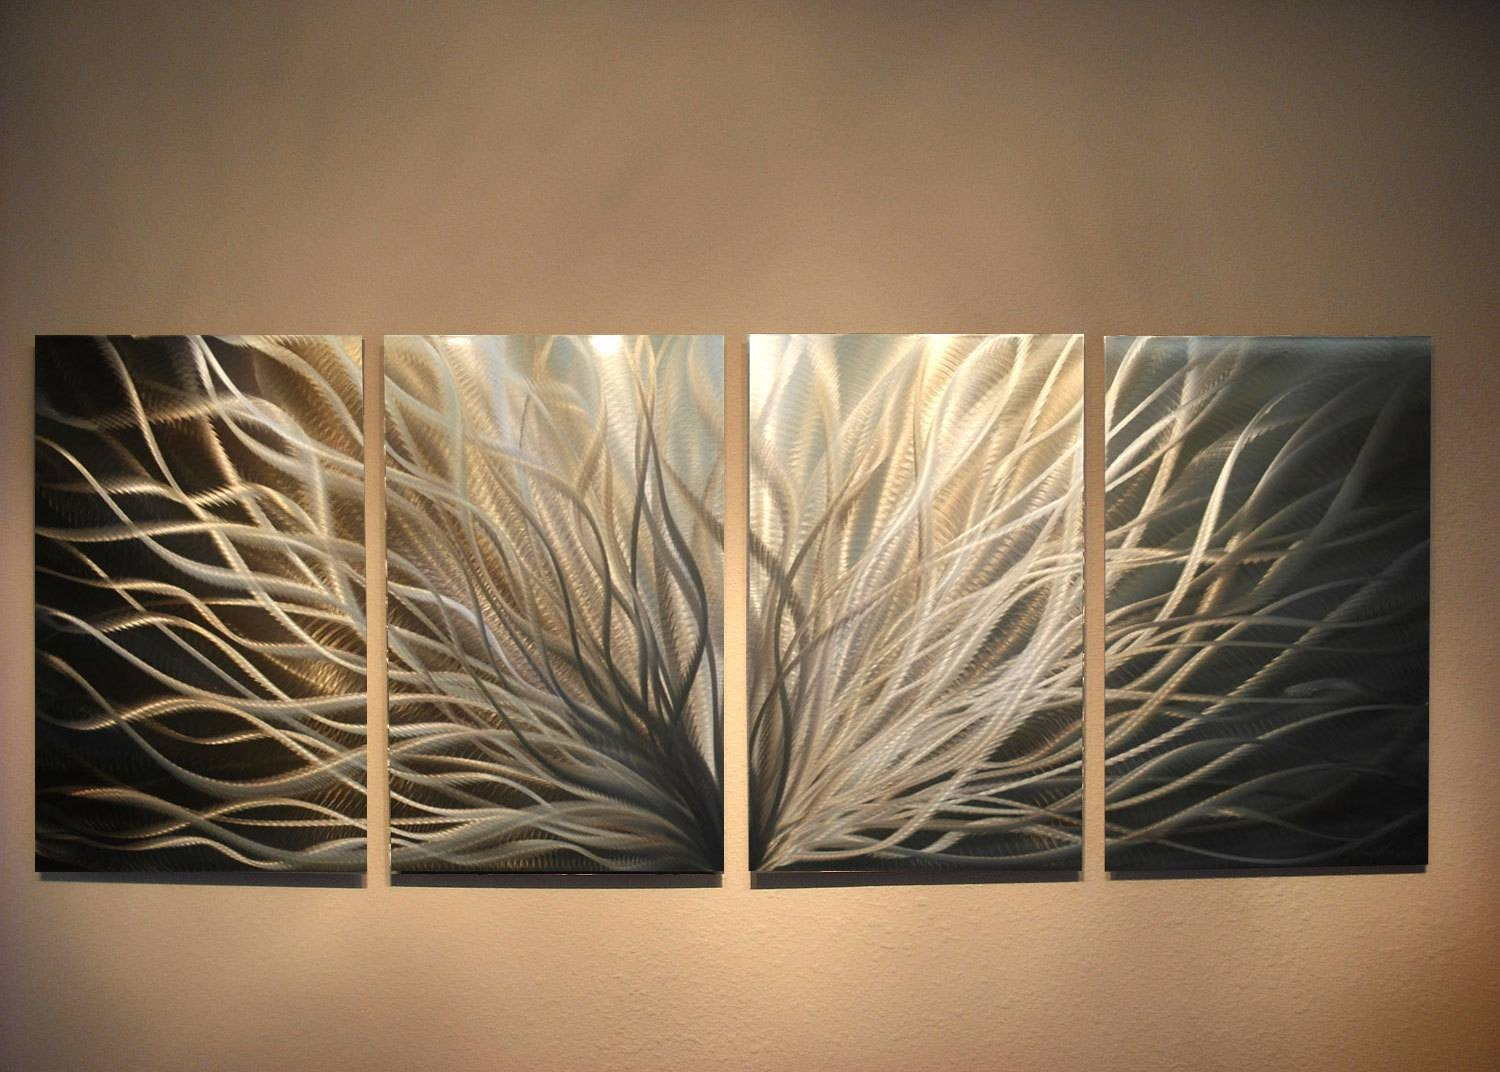 Metal Wall Art Modern Abstract Decormiles Shayinspiringart Pertaining To 2017 Contemporary Metal Wall Art Sculpture (View 11 of 20)